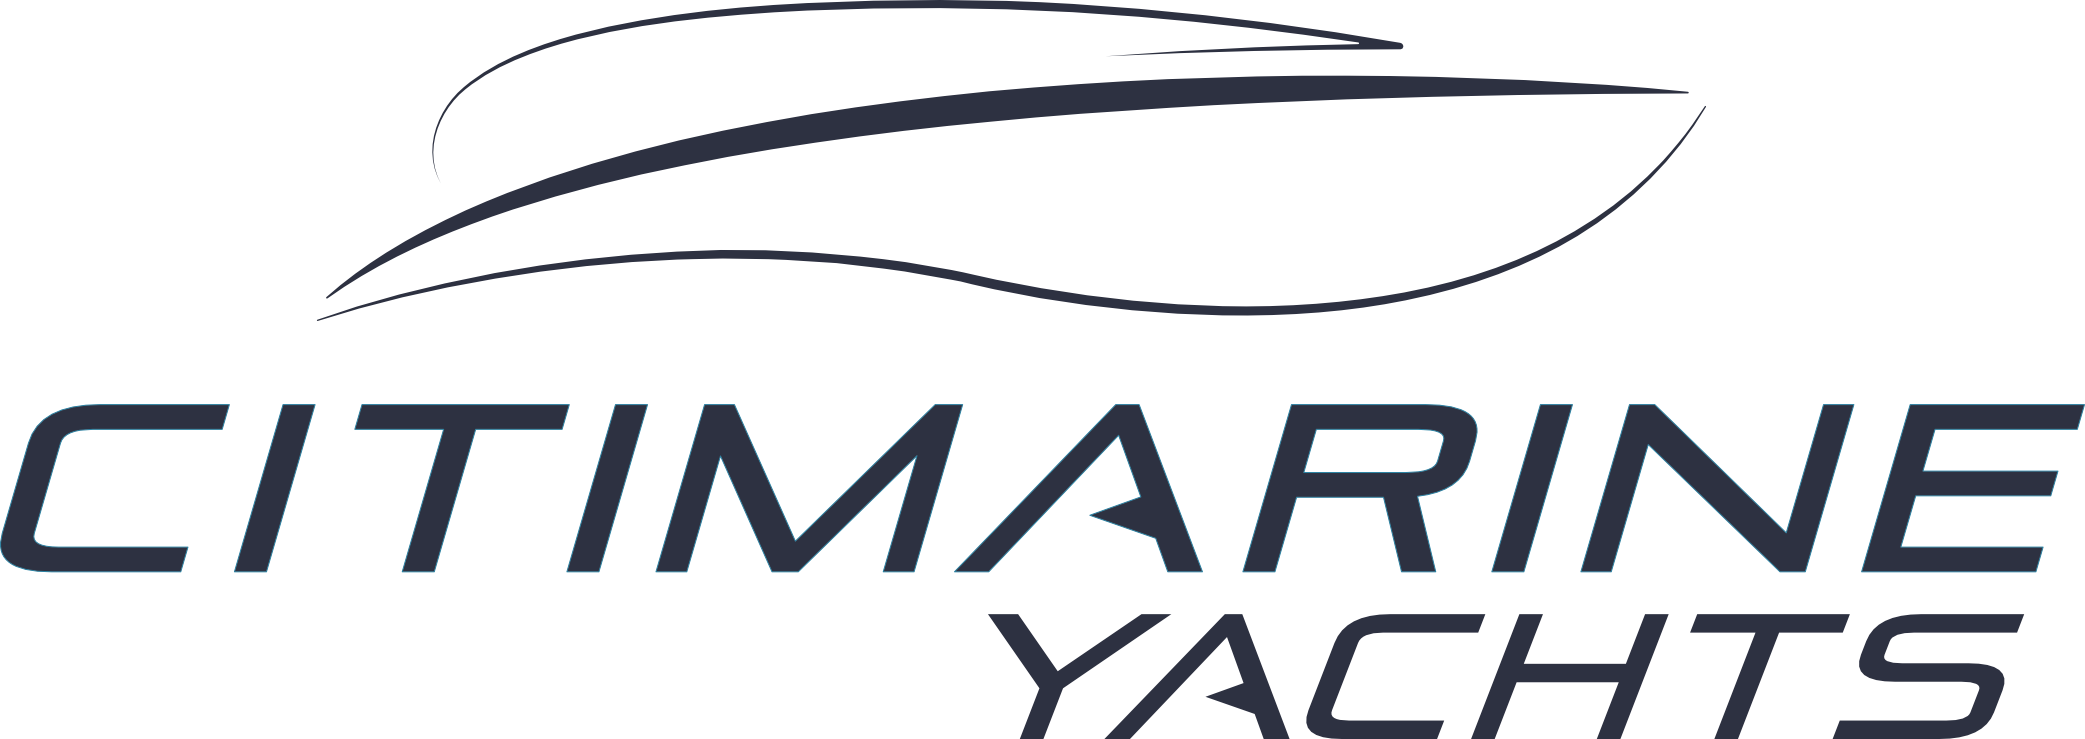 Citimarine Yachtslogo